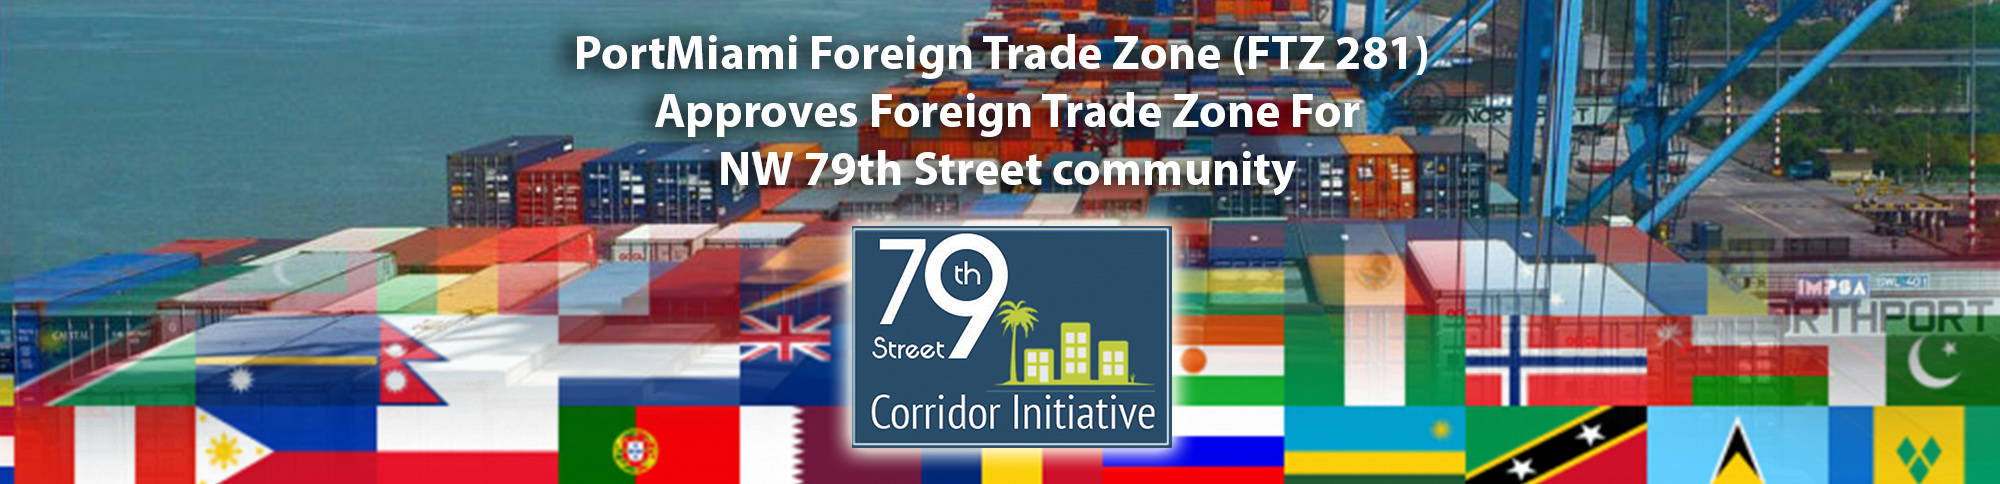 79th-Business-trade-zone